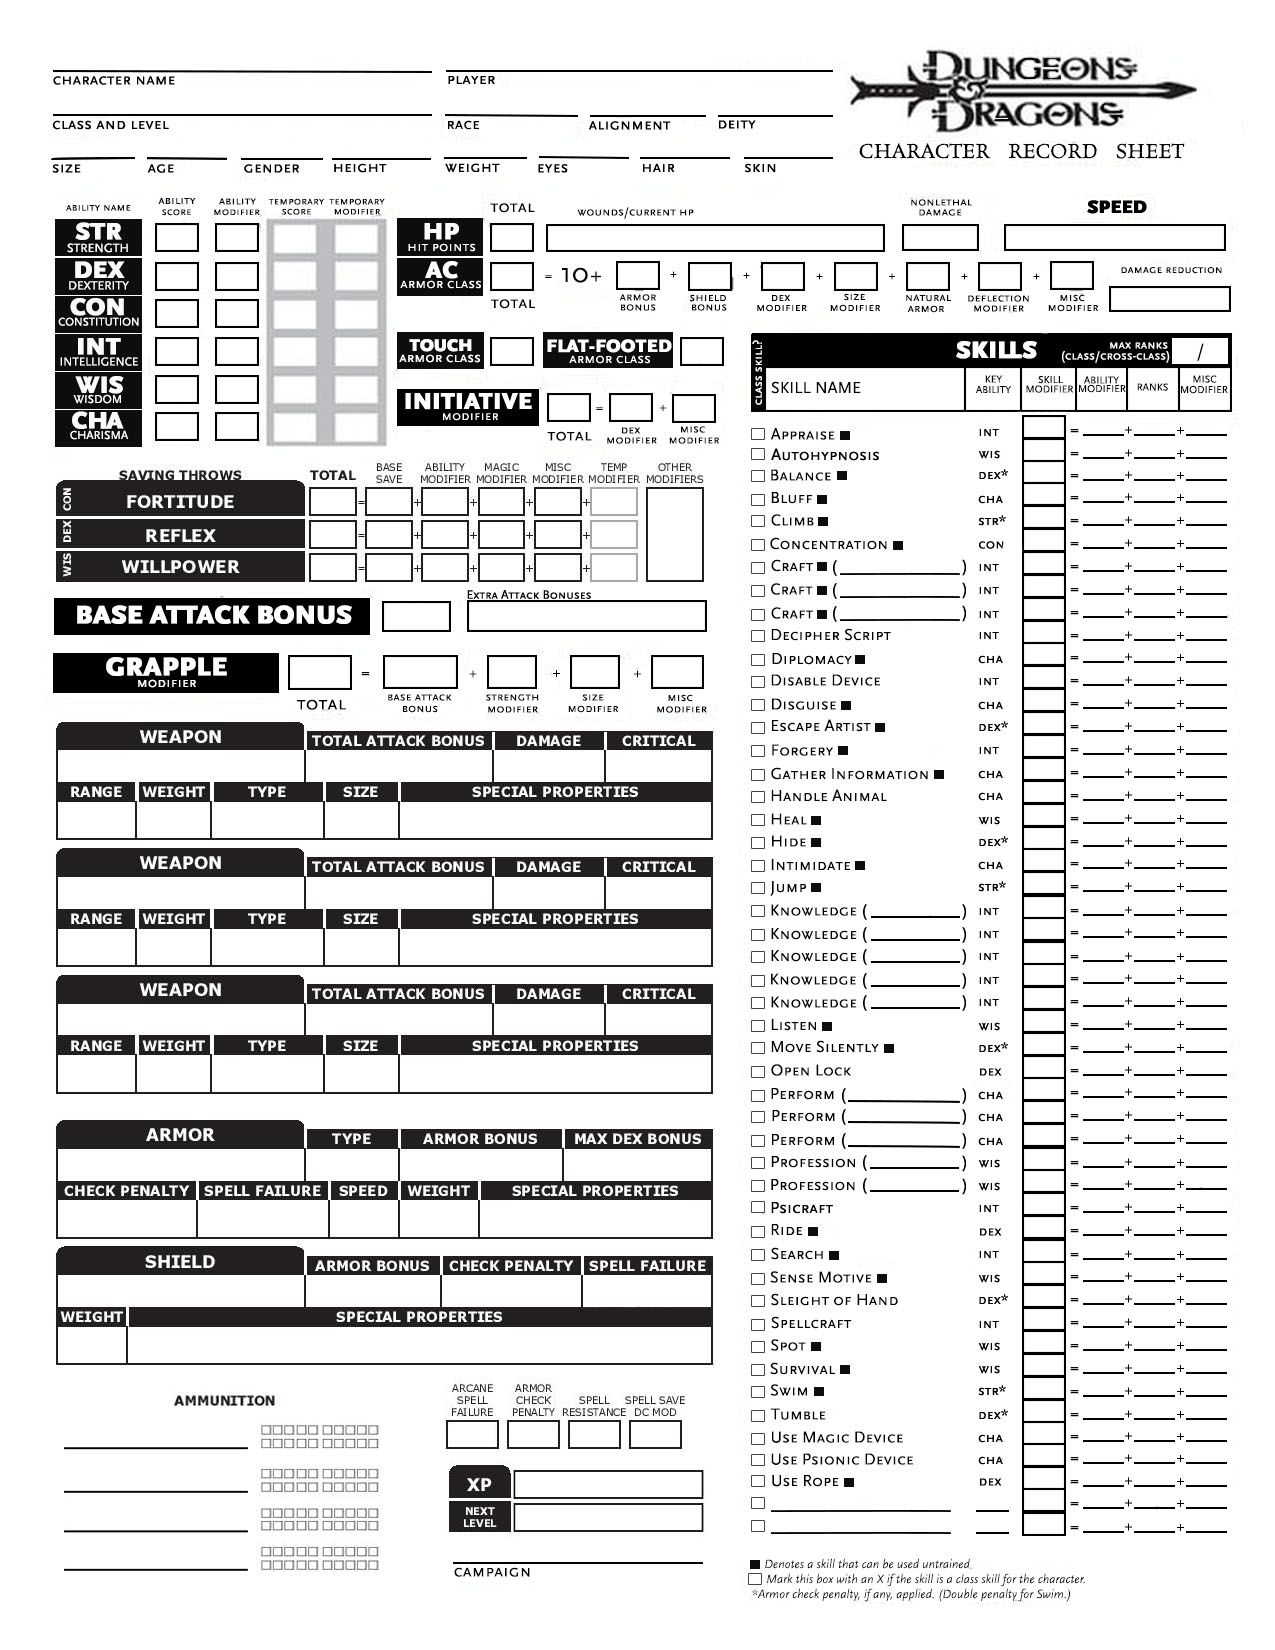 photograph about 3.5e Character Sheet Printable named This is a customized individuality sheet I built for 3.5e of dd